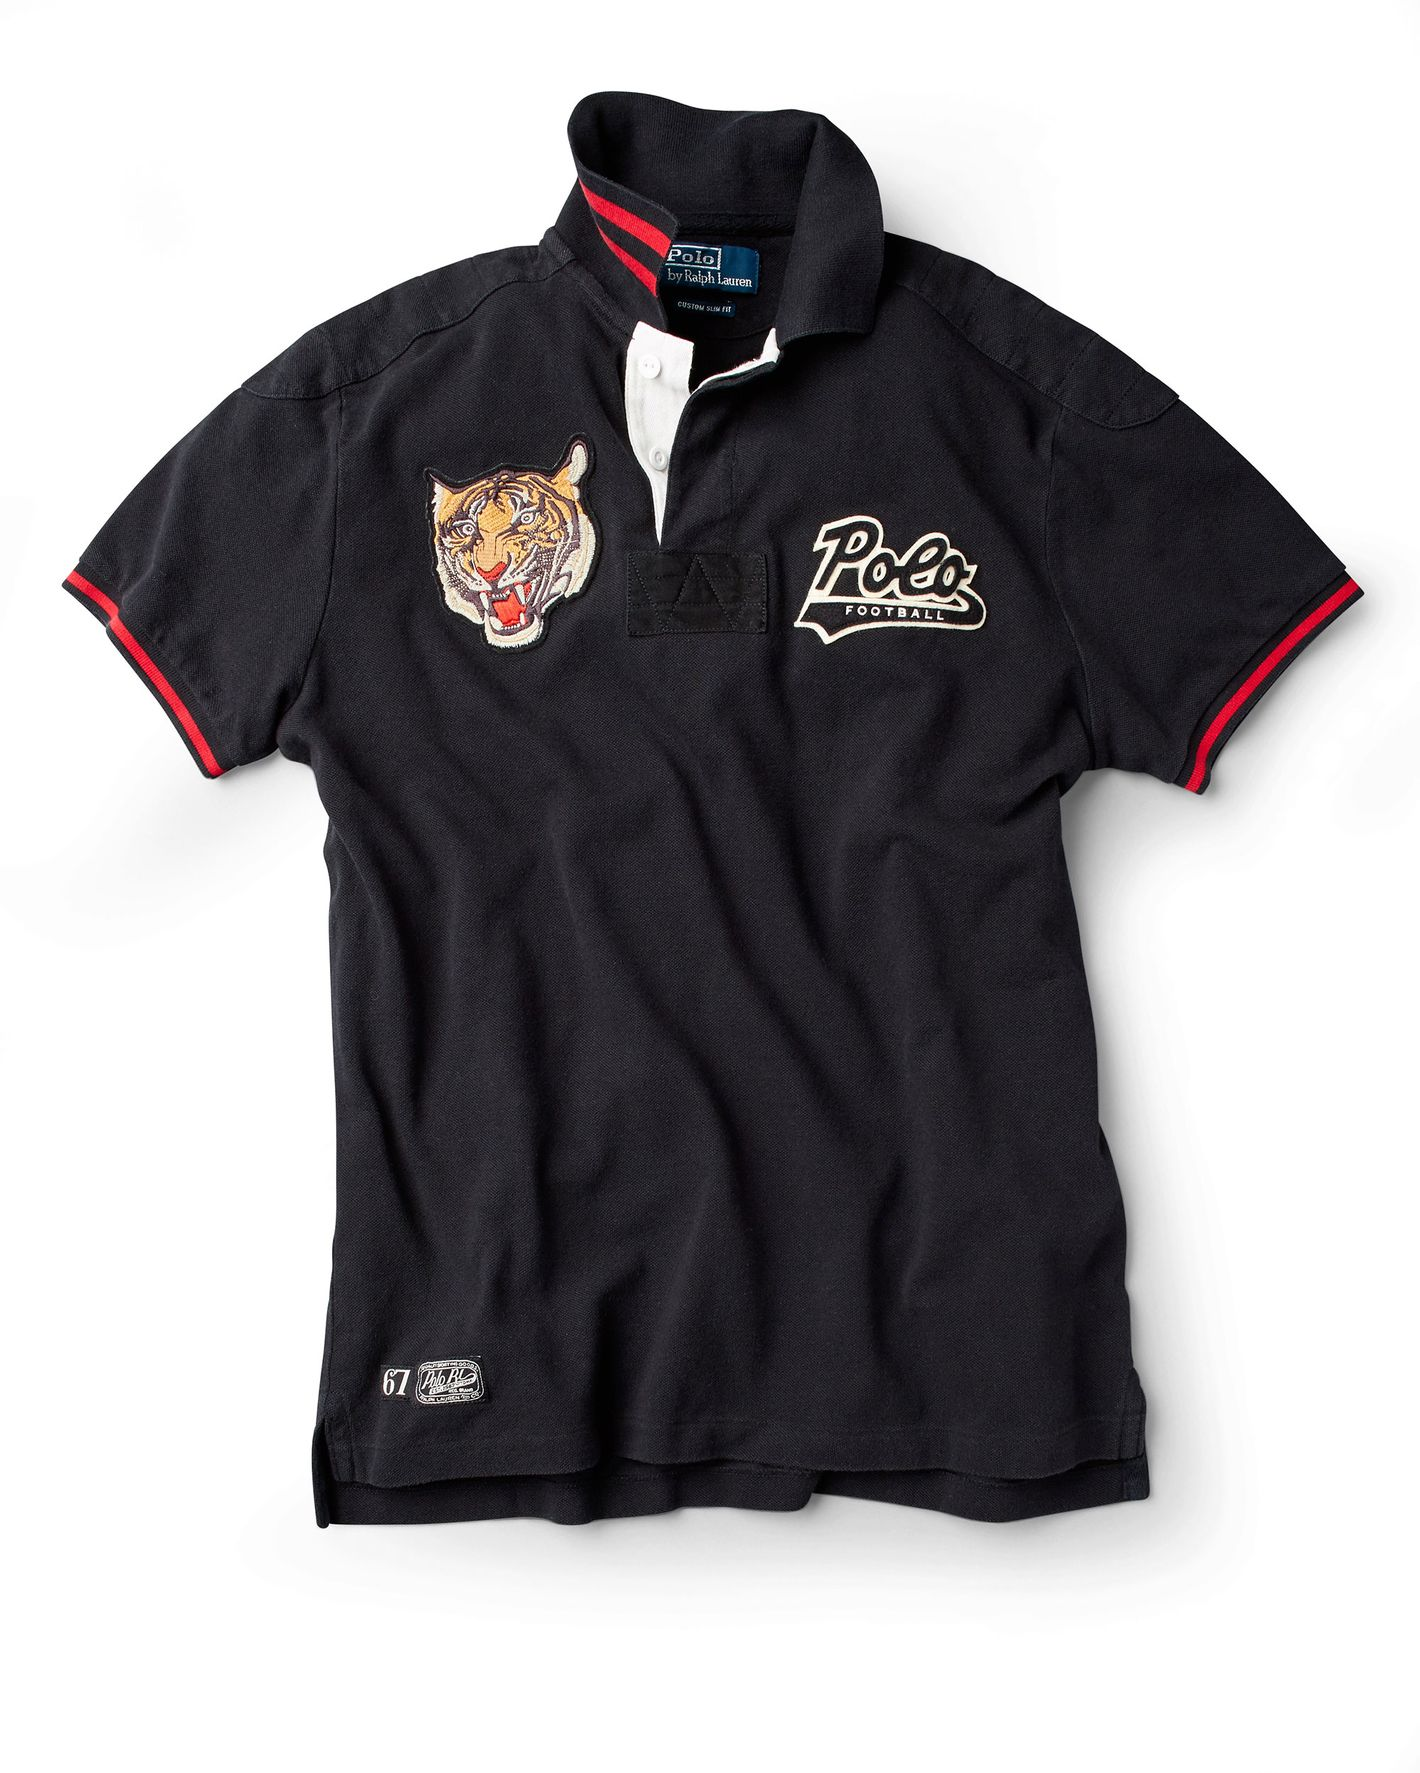 Ralph lauren releases fourth limited edition polo shirt for The tour jacket polo shirt